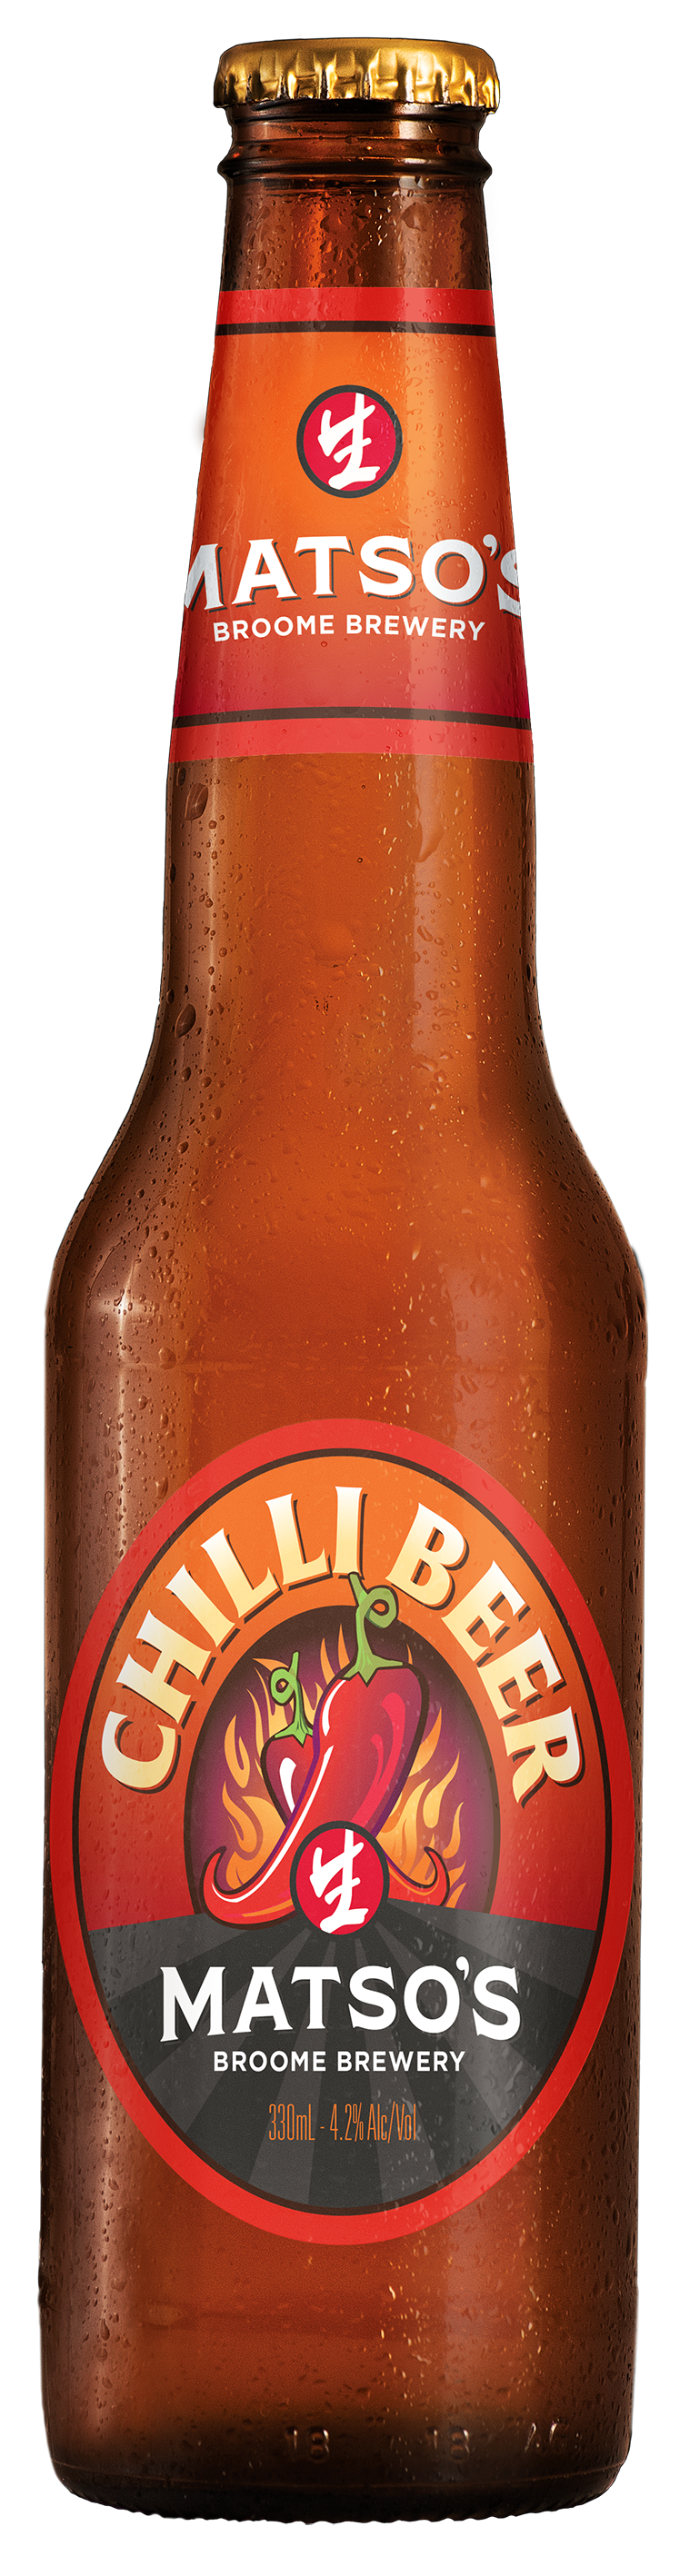 Chilli Beer - Summer Seasonal